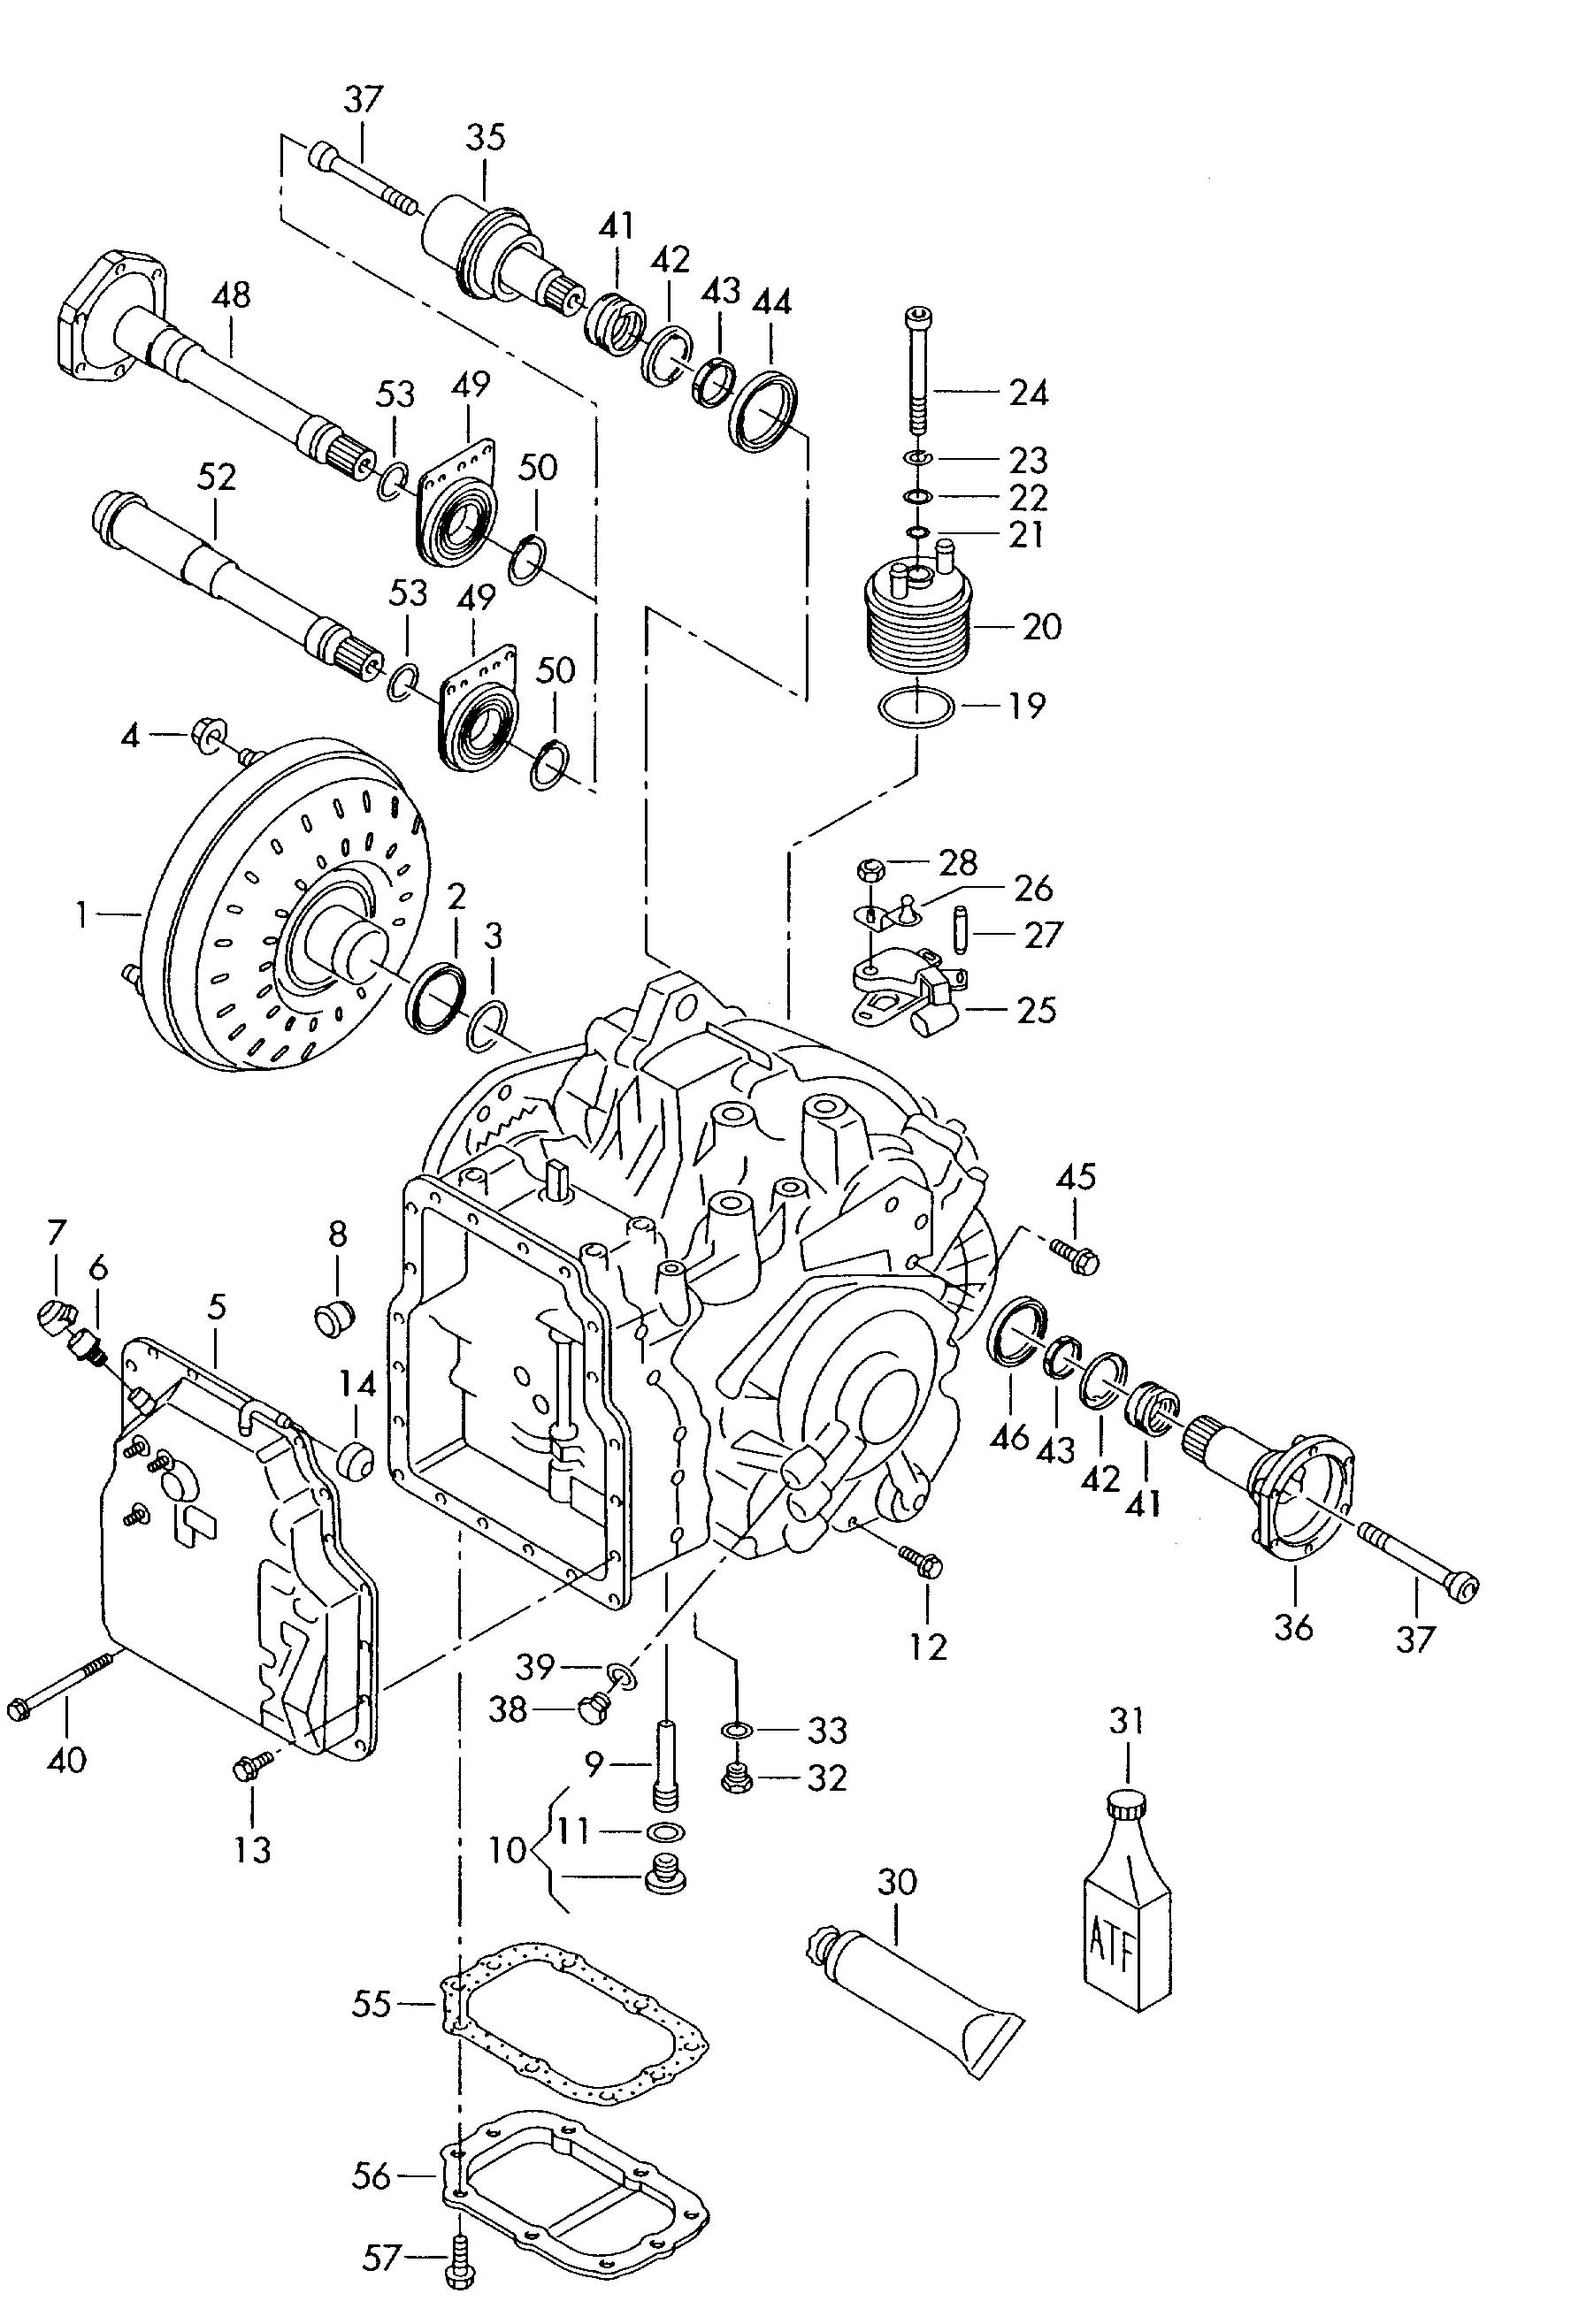 corvette ecu wiring diagram corvette discover your wiring vanagon engine wiring diagram corvette